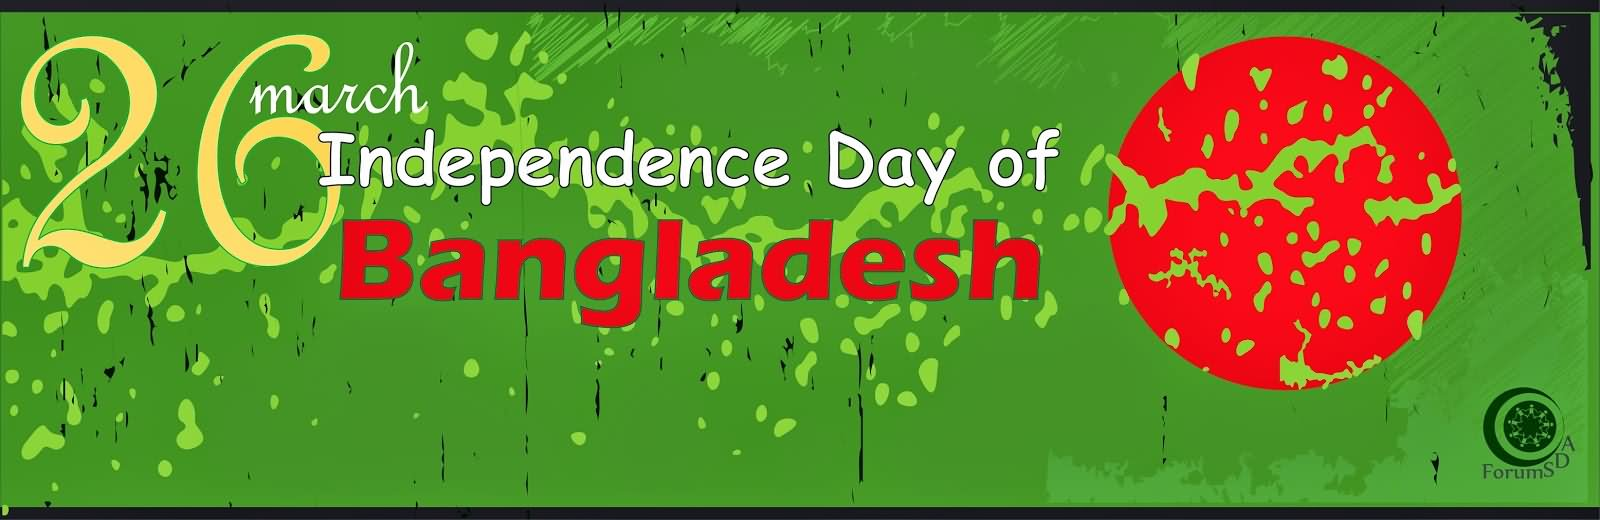 essay on independence day of bangladesh The independence day of bangladesh on 26 march is a national holiday it is for   essay writing competitions stressing on the significance of the day are held.